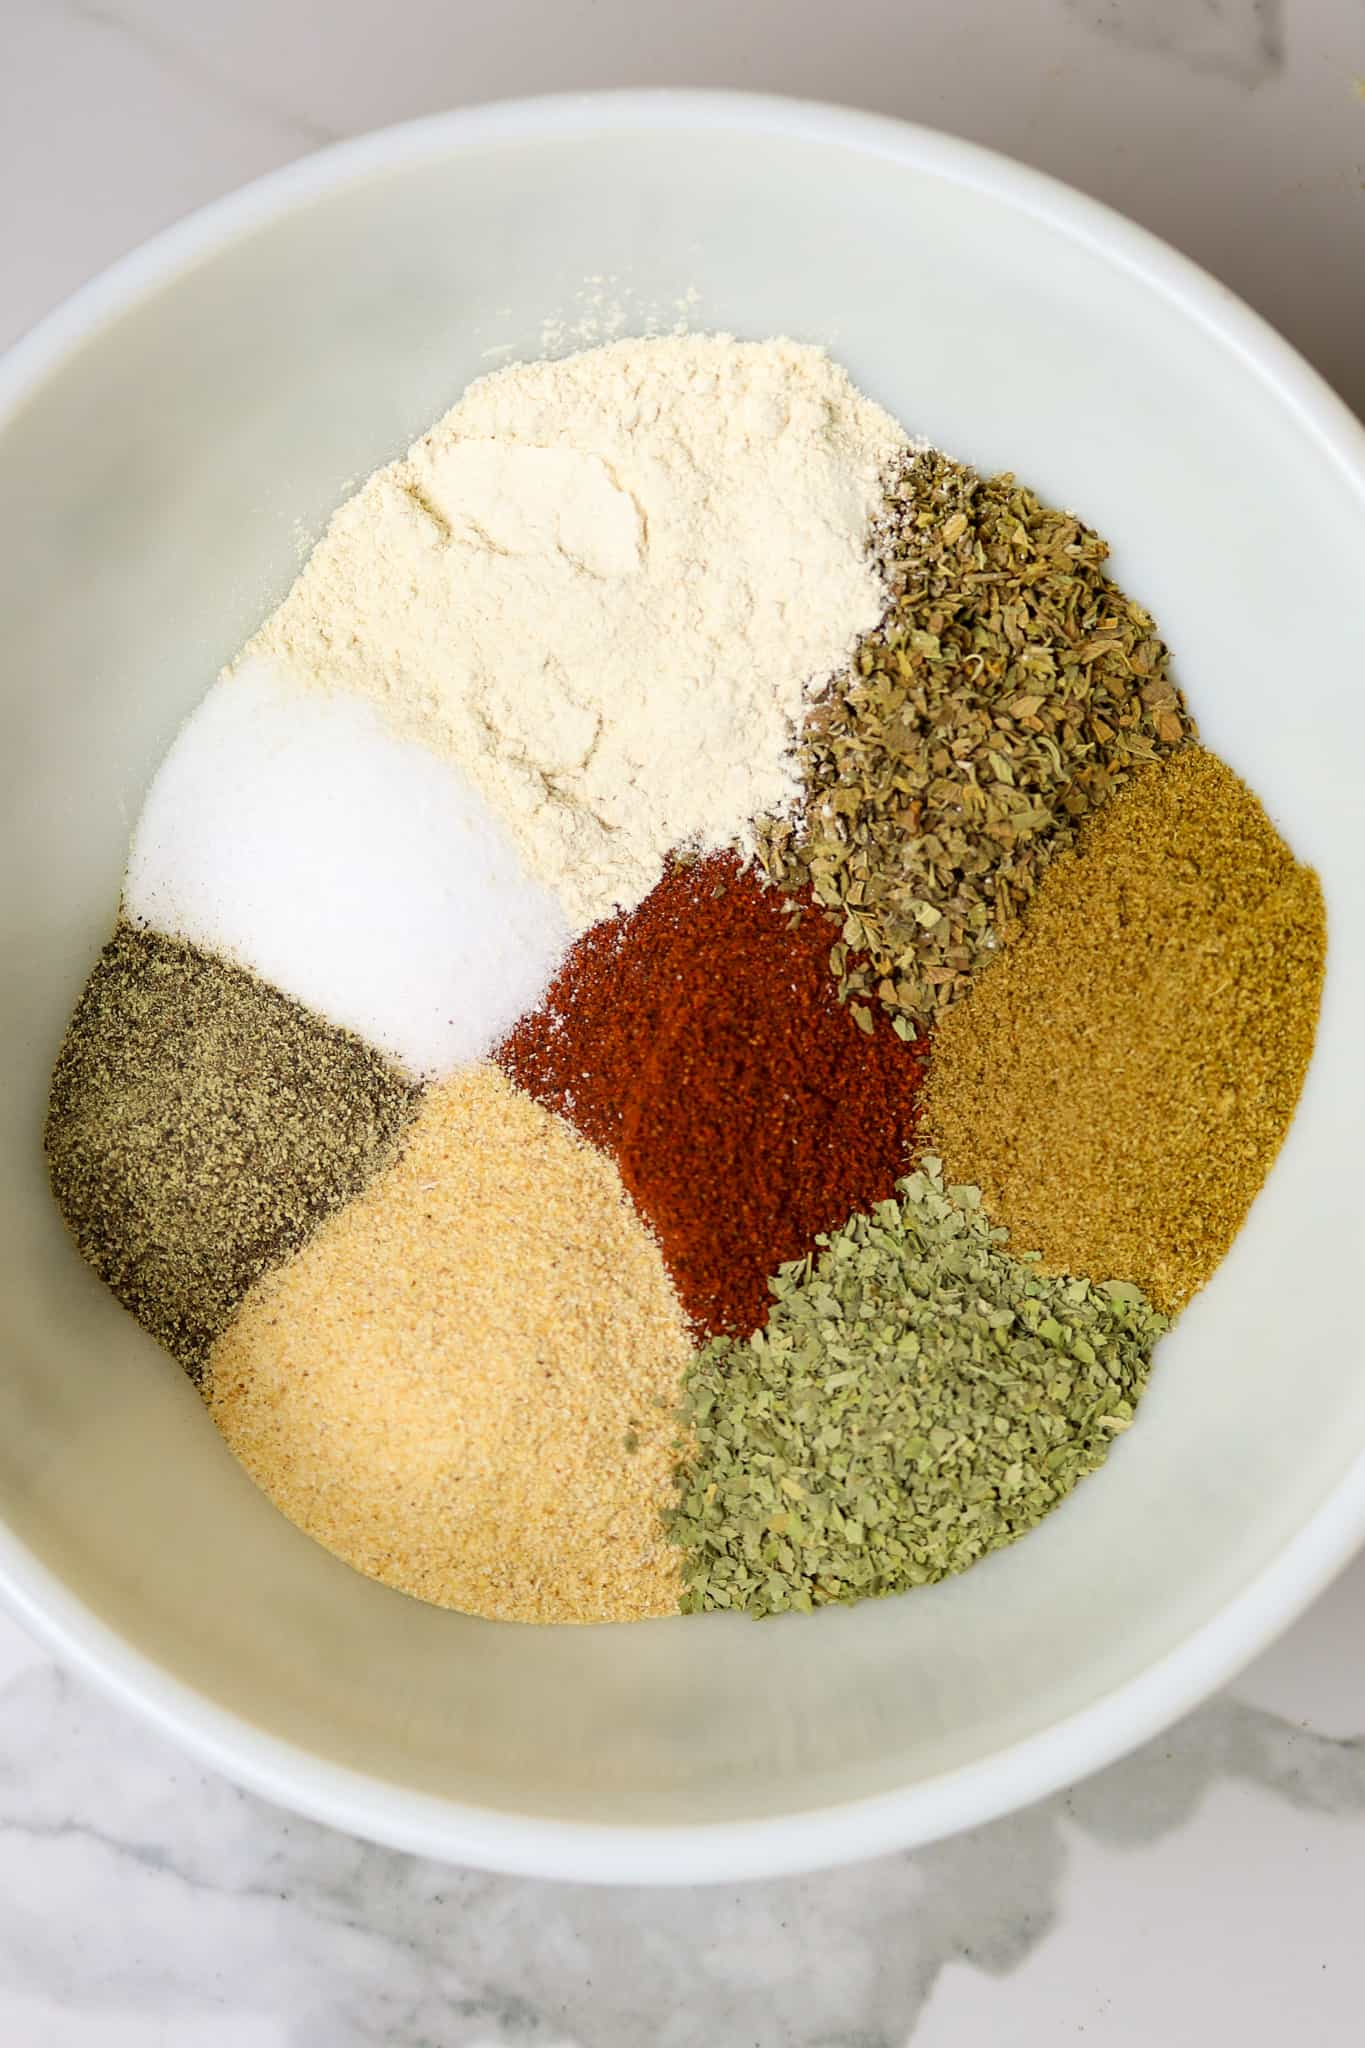 A bowl of several unmixed spices.